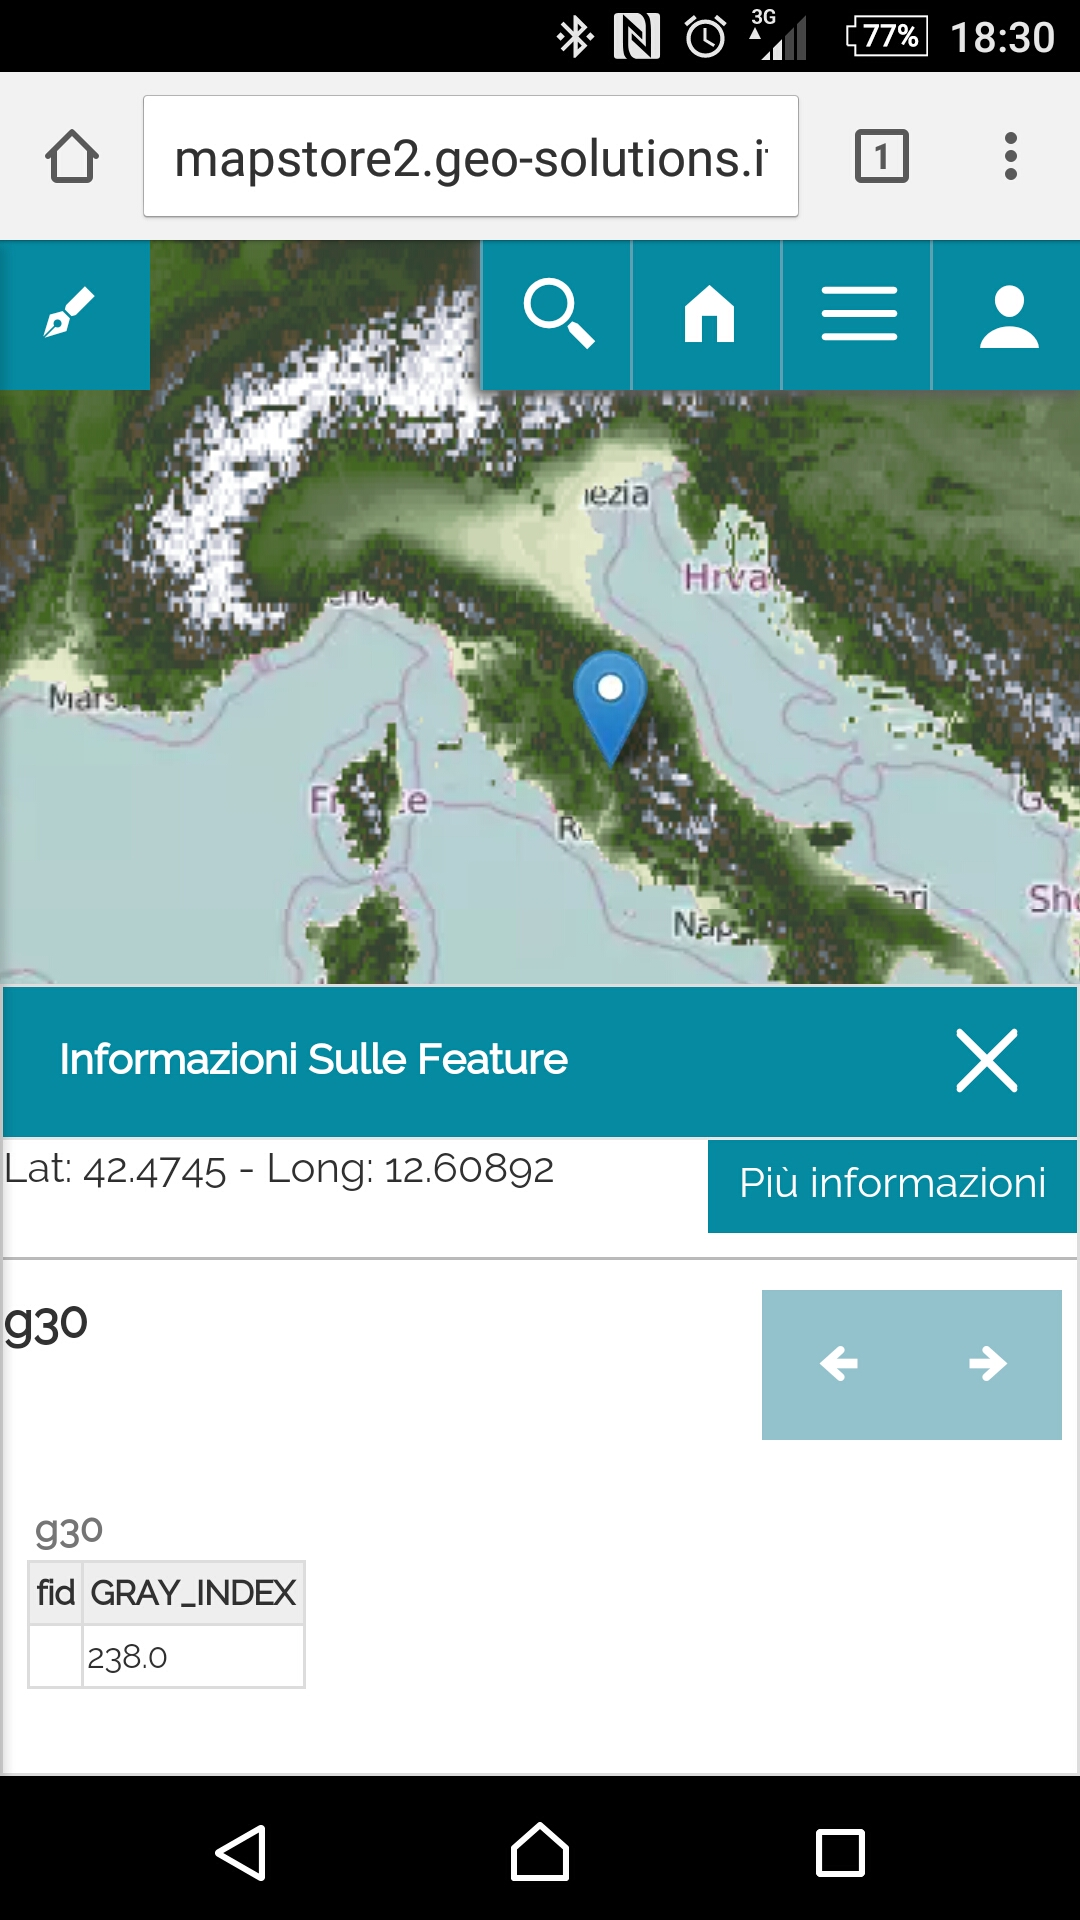 MapStore 2 Mobile, the featureinfo at work